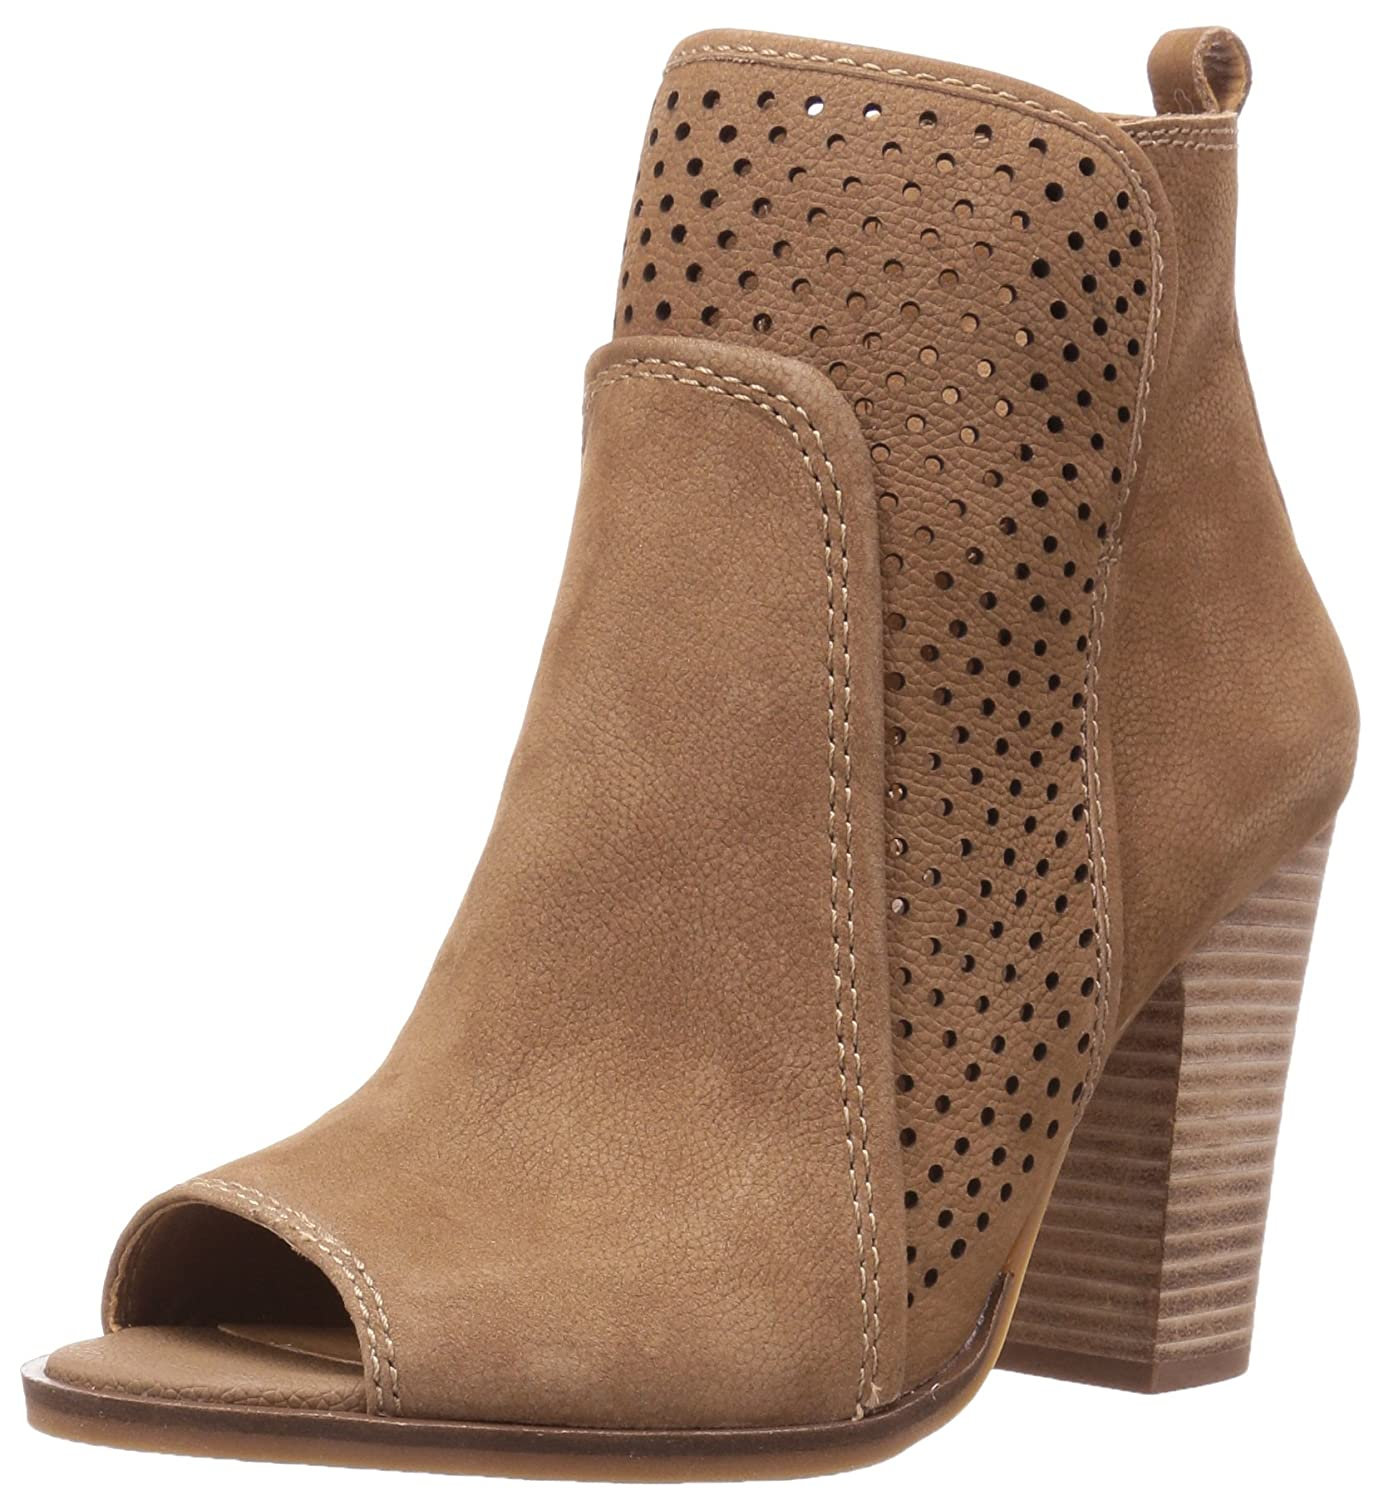 Lucky Brand Women's Lakmeh Ankle Bootie B01LXUSHU4 8 B(M) US|Sesame